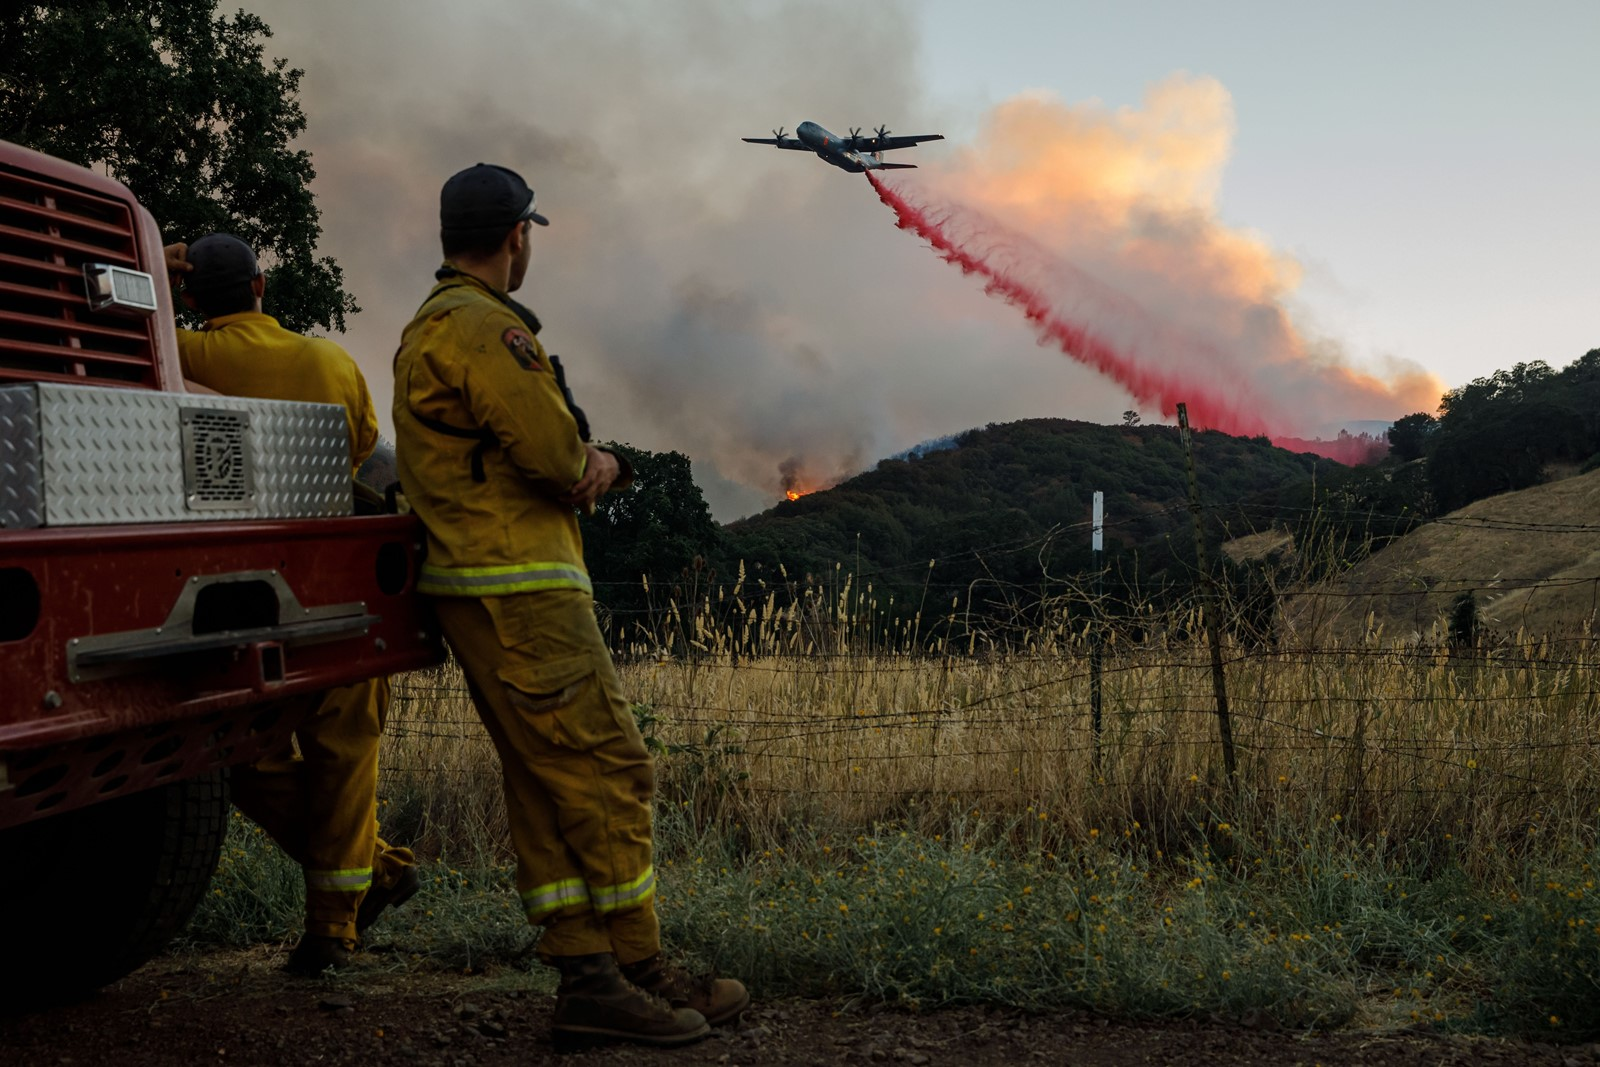 Firefighters watch as air tankers drop flame retardant ahead of the River fire in Lakeport, California, on Wednesday. The blaze, one of 16 large wildfires burning across the state, was 33,398 acres and 38% contained. — Photograph: Marcus Yam/Los Angeles Times.